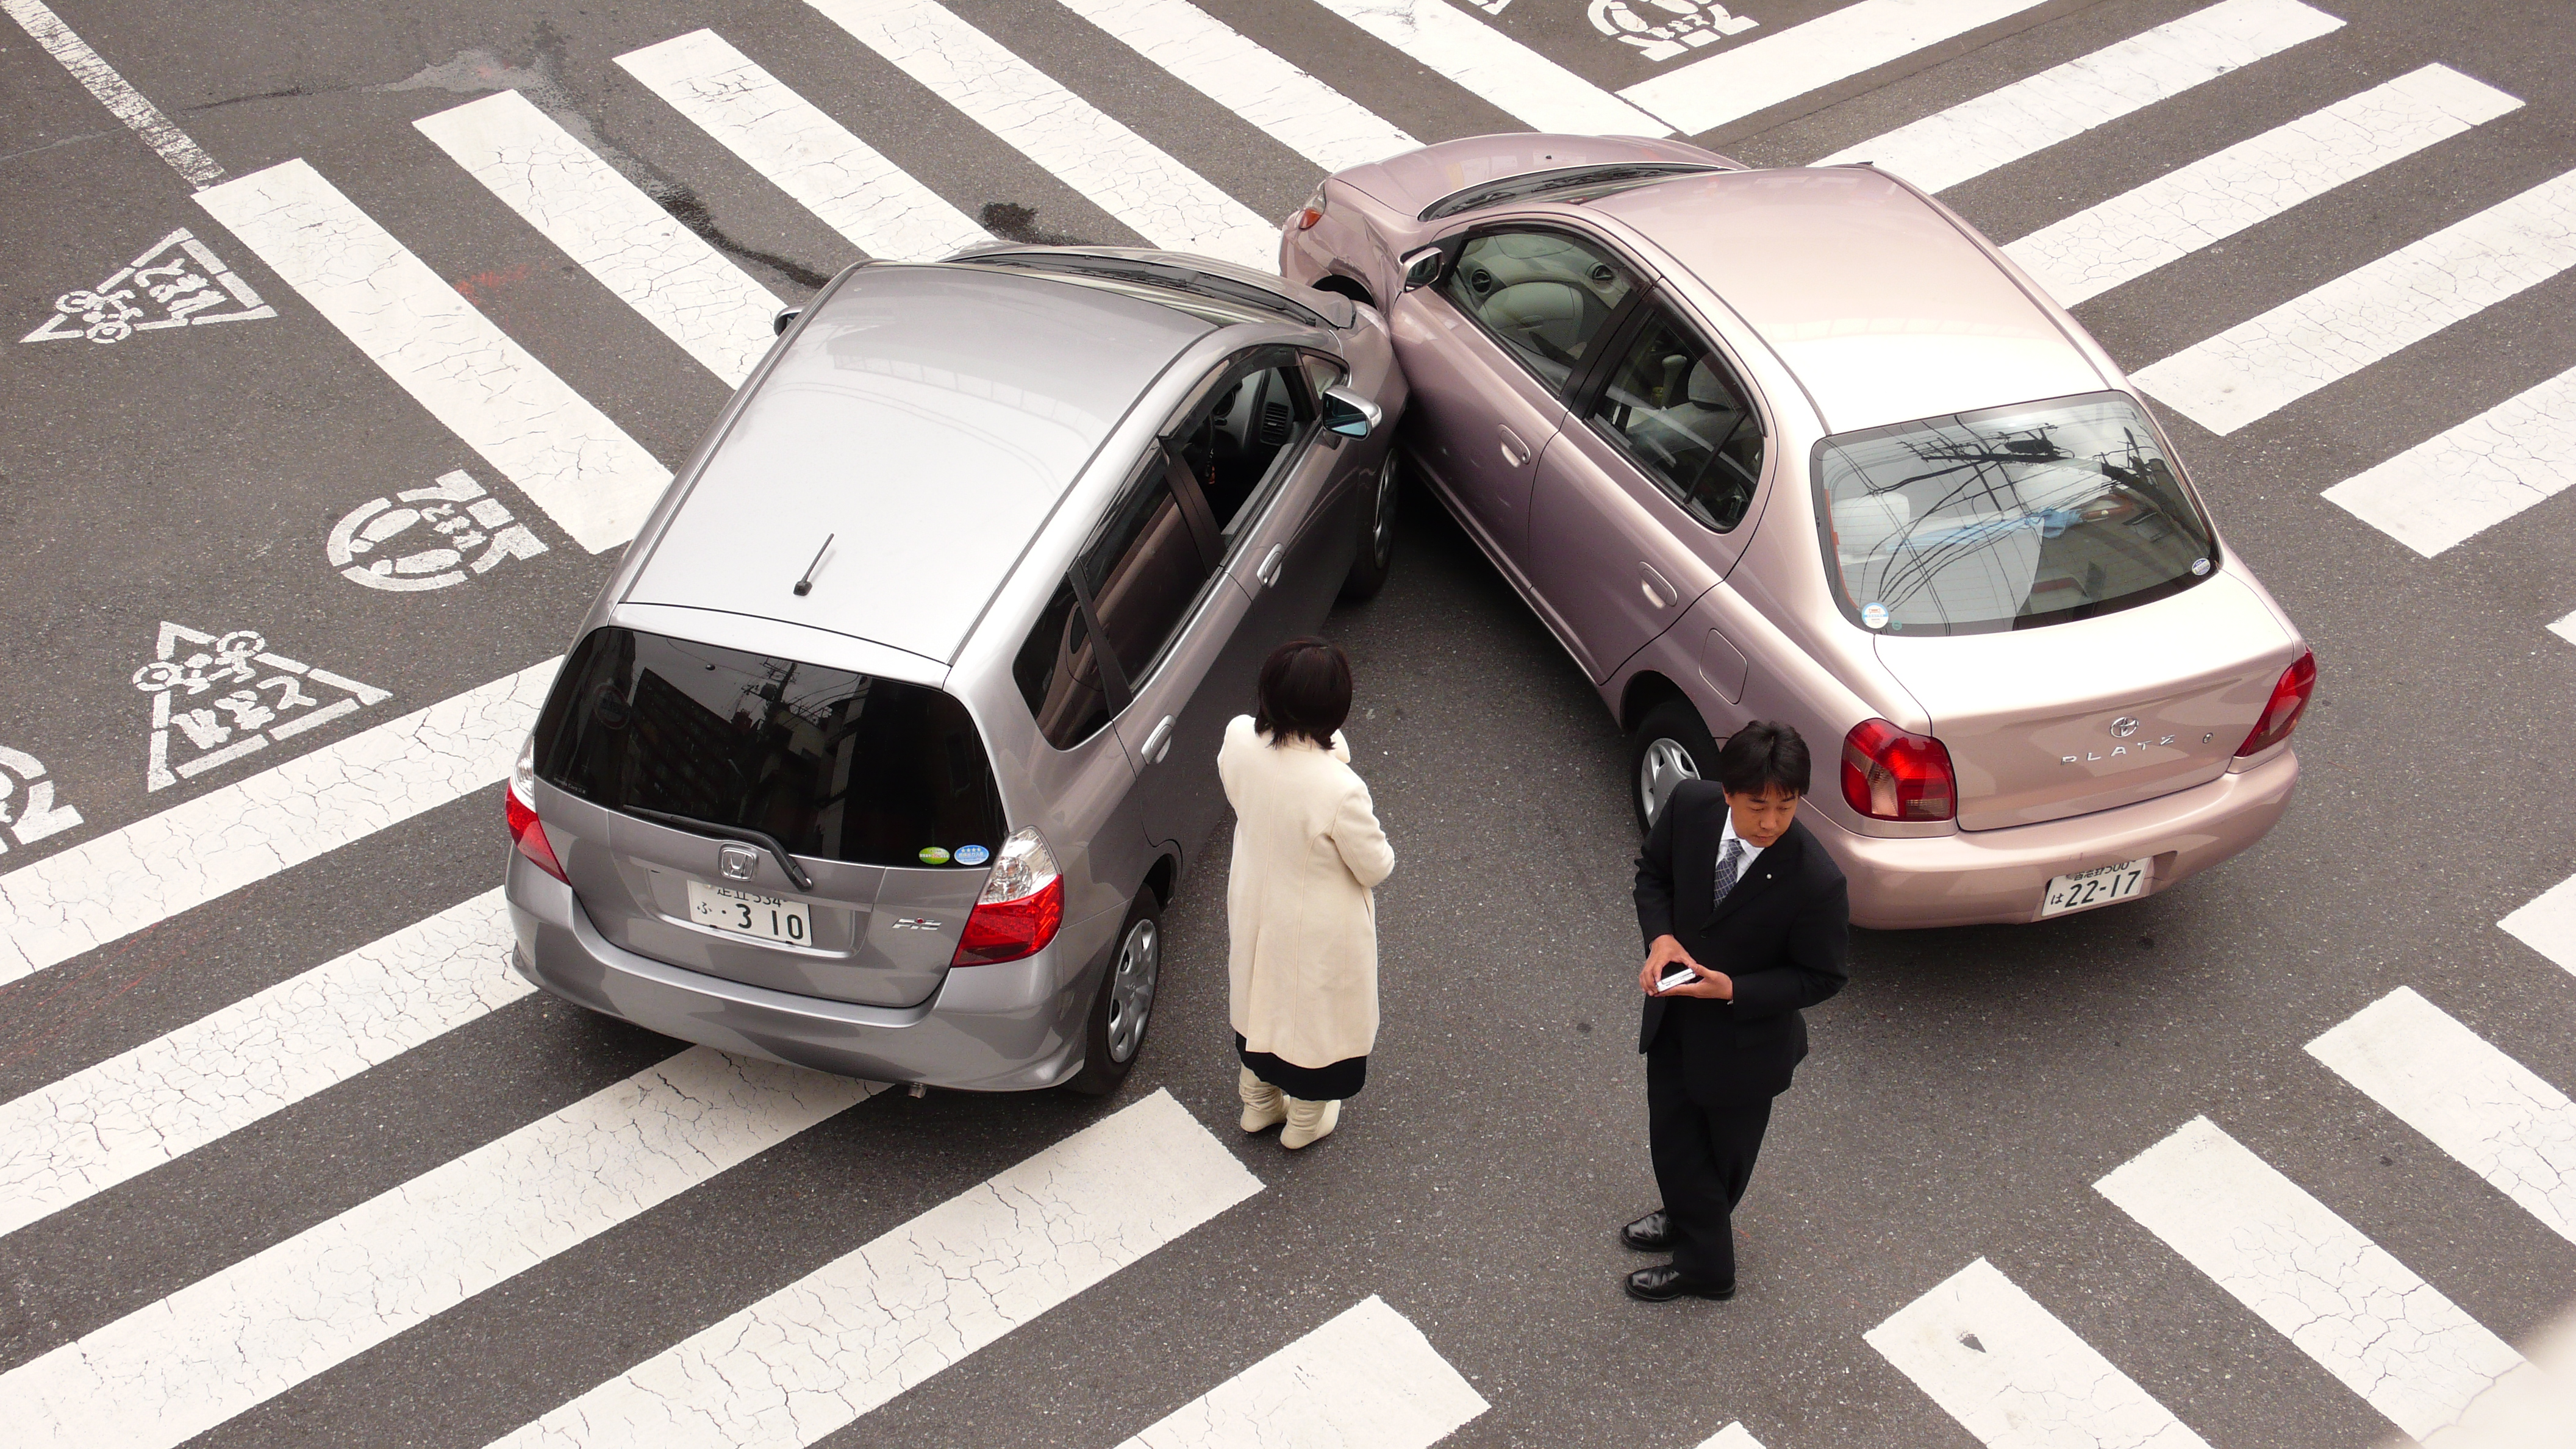 004 Japanese Car Accident Essay Example On Road Imposing Wikipedia Full